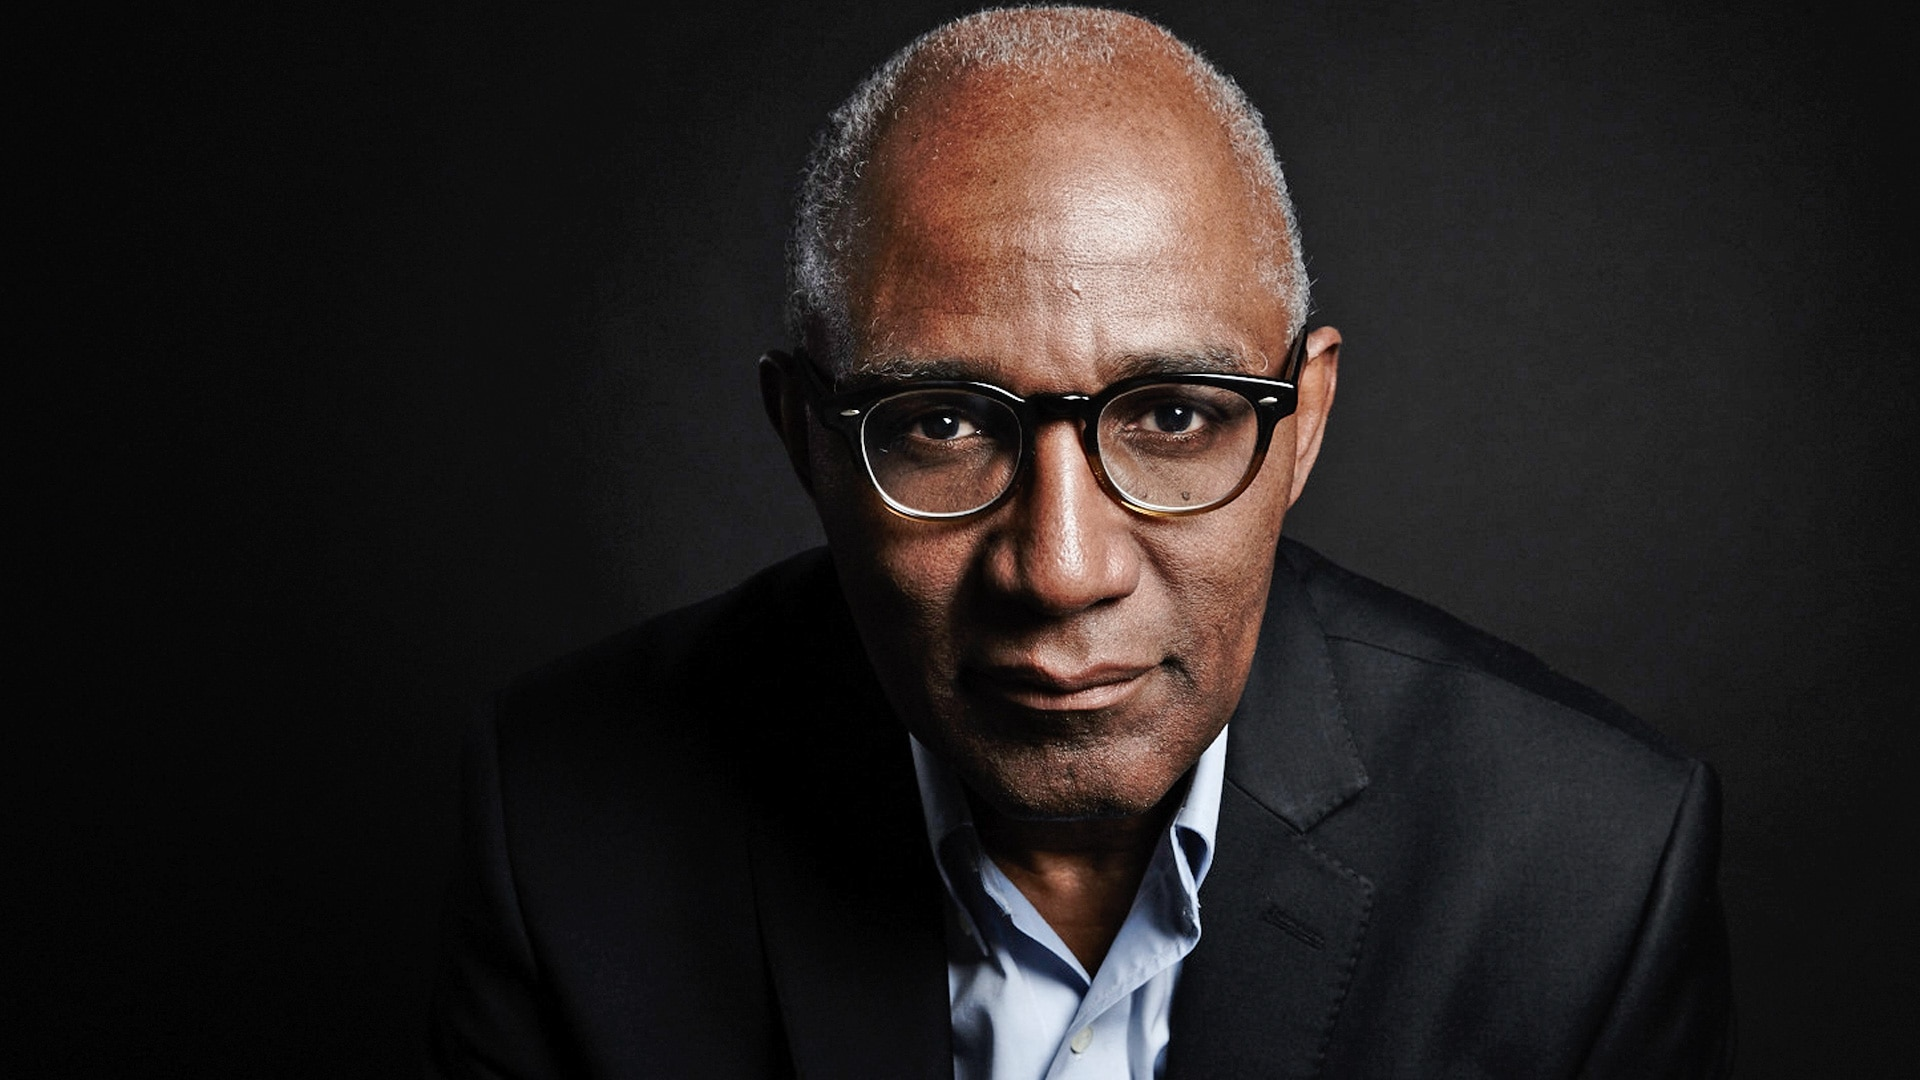 Trevor Phillips staring at the camera